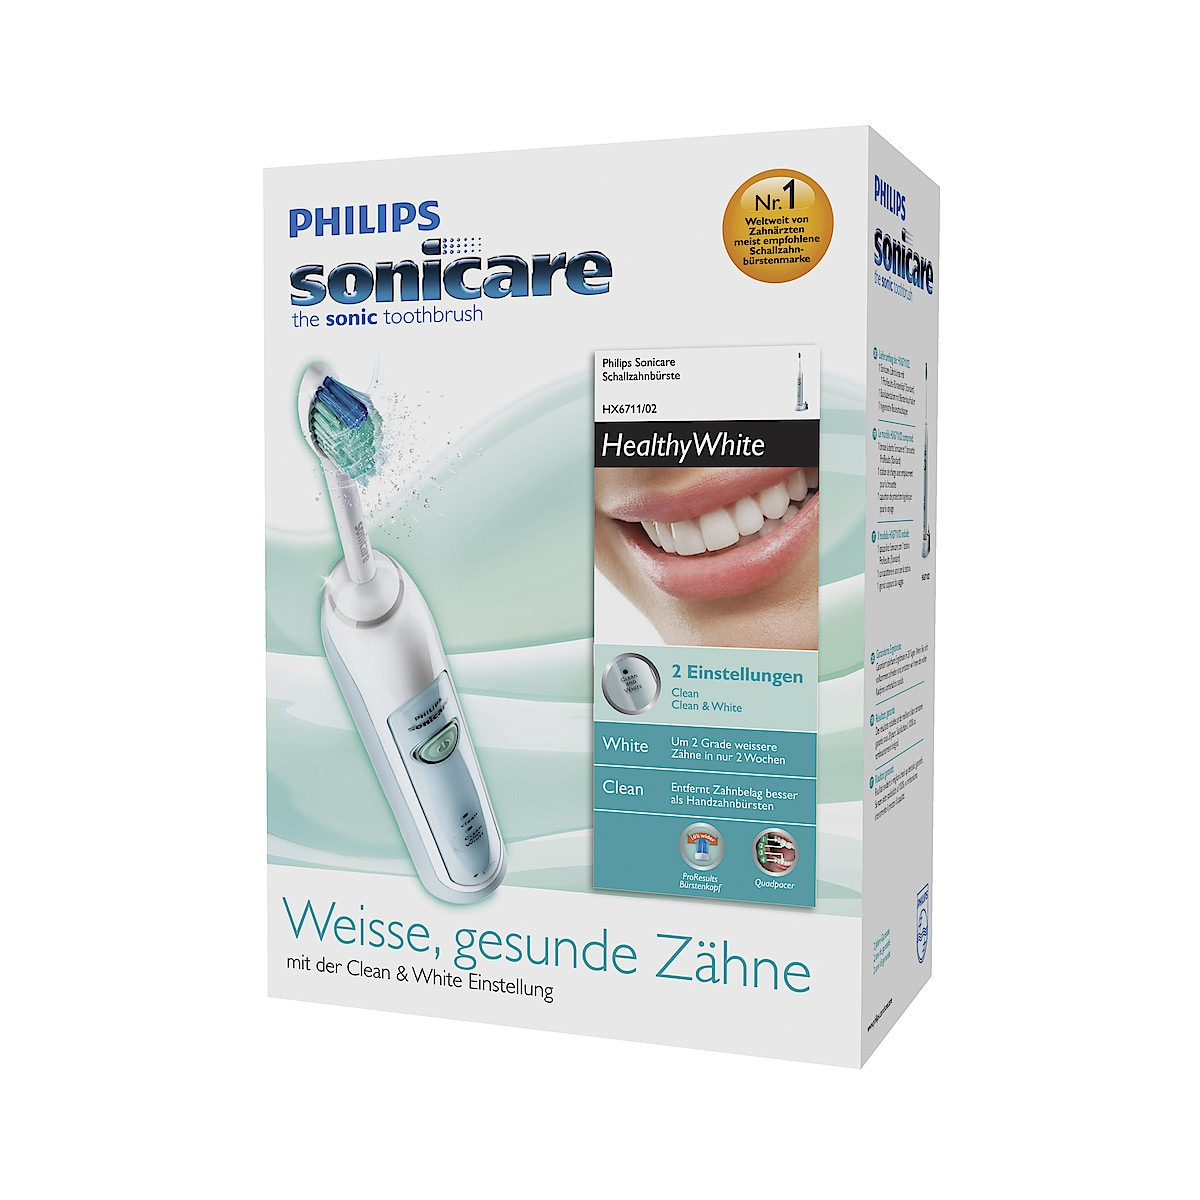 Philips Healthy White Sonicare eltannbørste